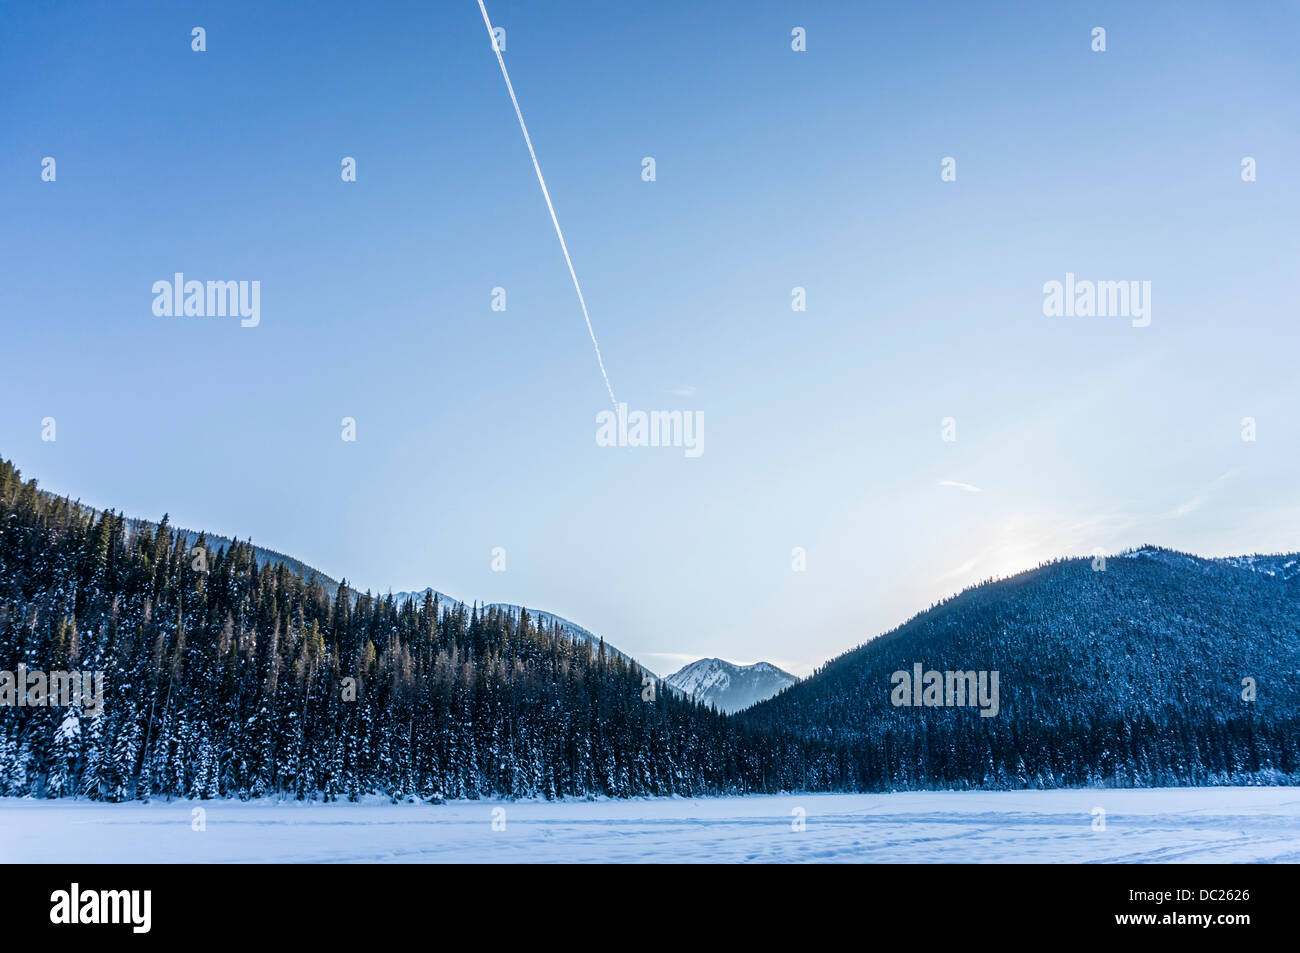 Winter view of Lightening Lakes in Manning Park, British Colombia, Canada. - Stock Image